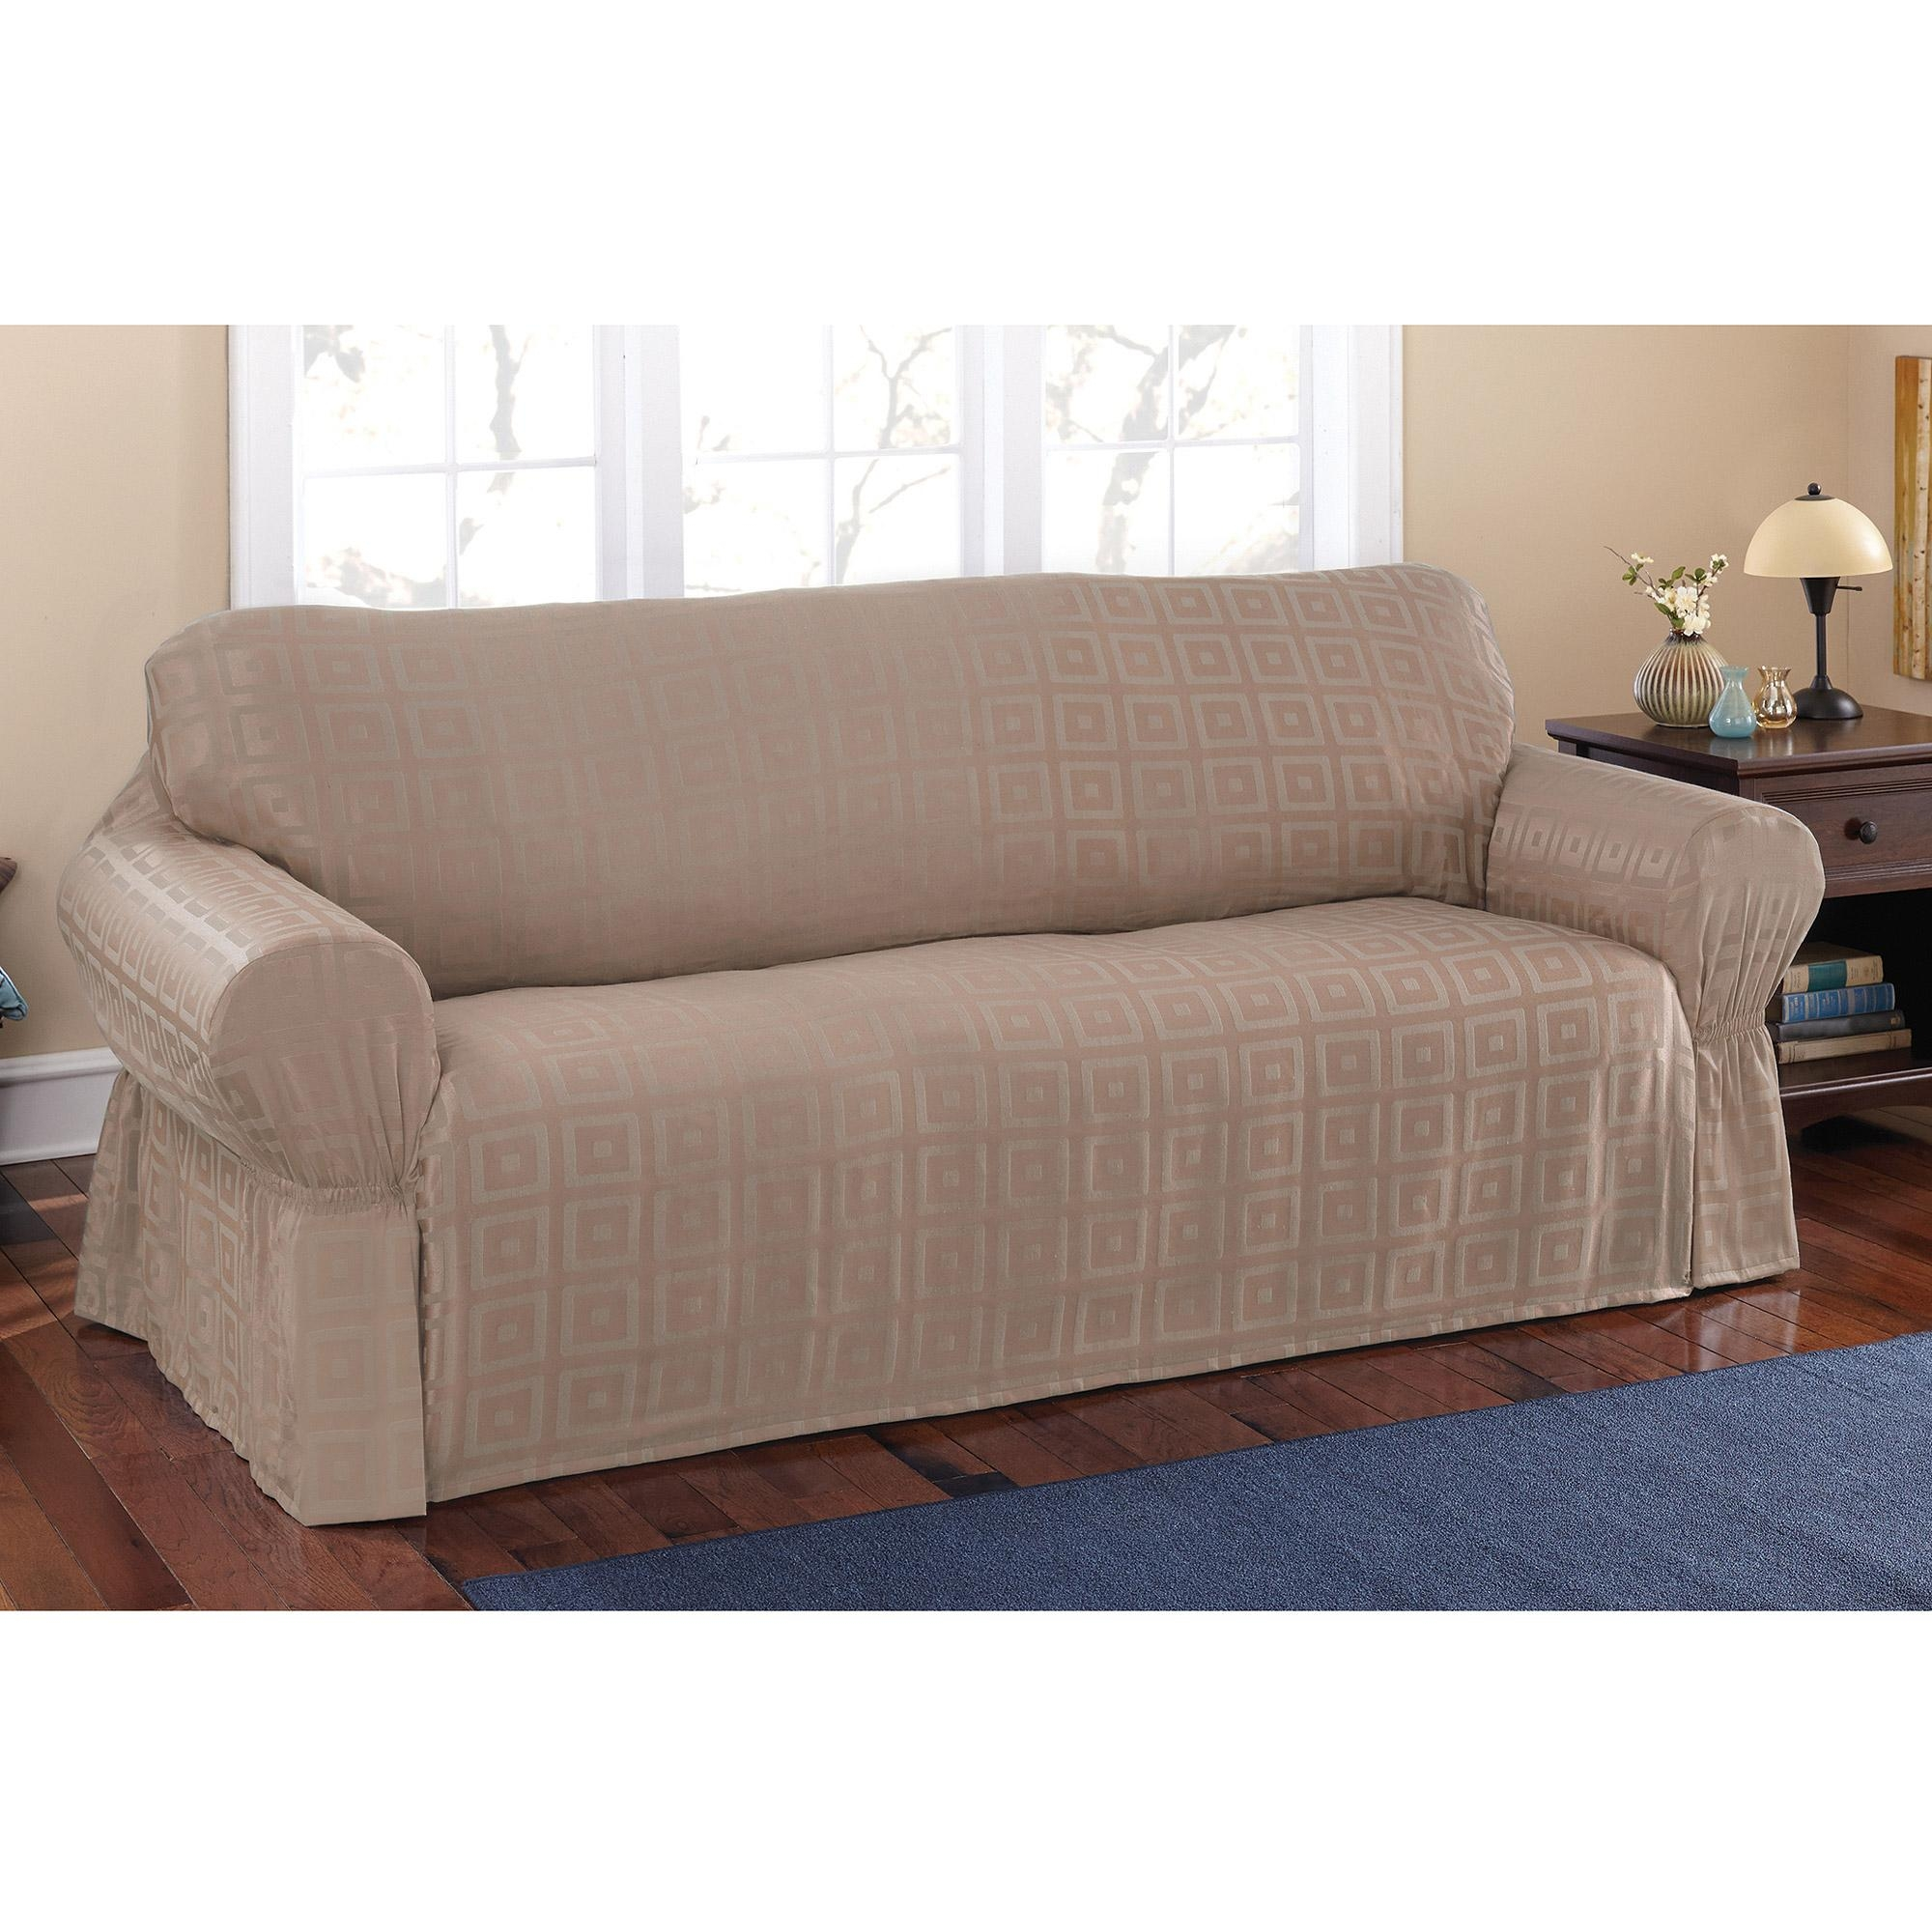 Furniture: Sure Fit Couch Covers | Sure Fit Sofa Slipcovers | Sure Regarding Sleeper Sofa Slipcovers (Image 8 of 20)